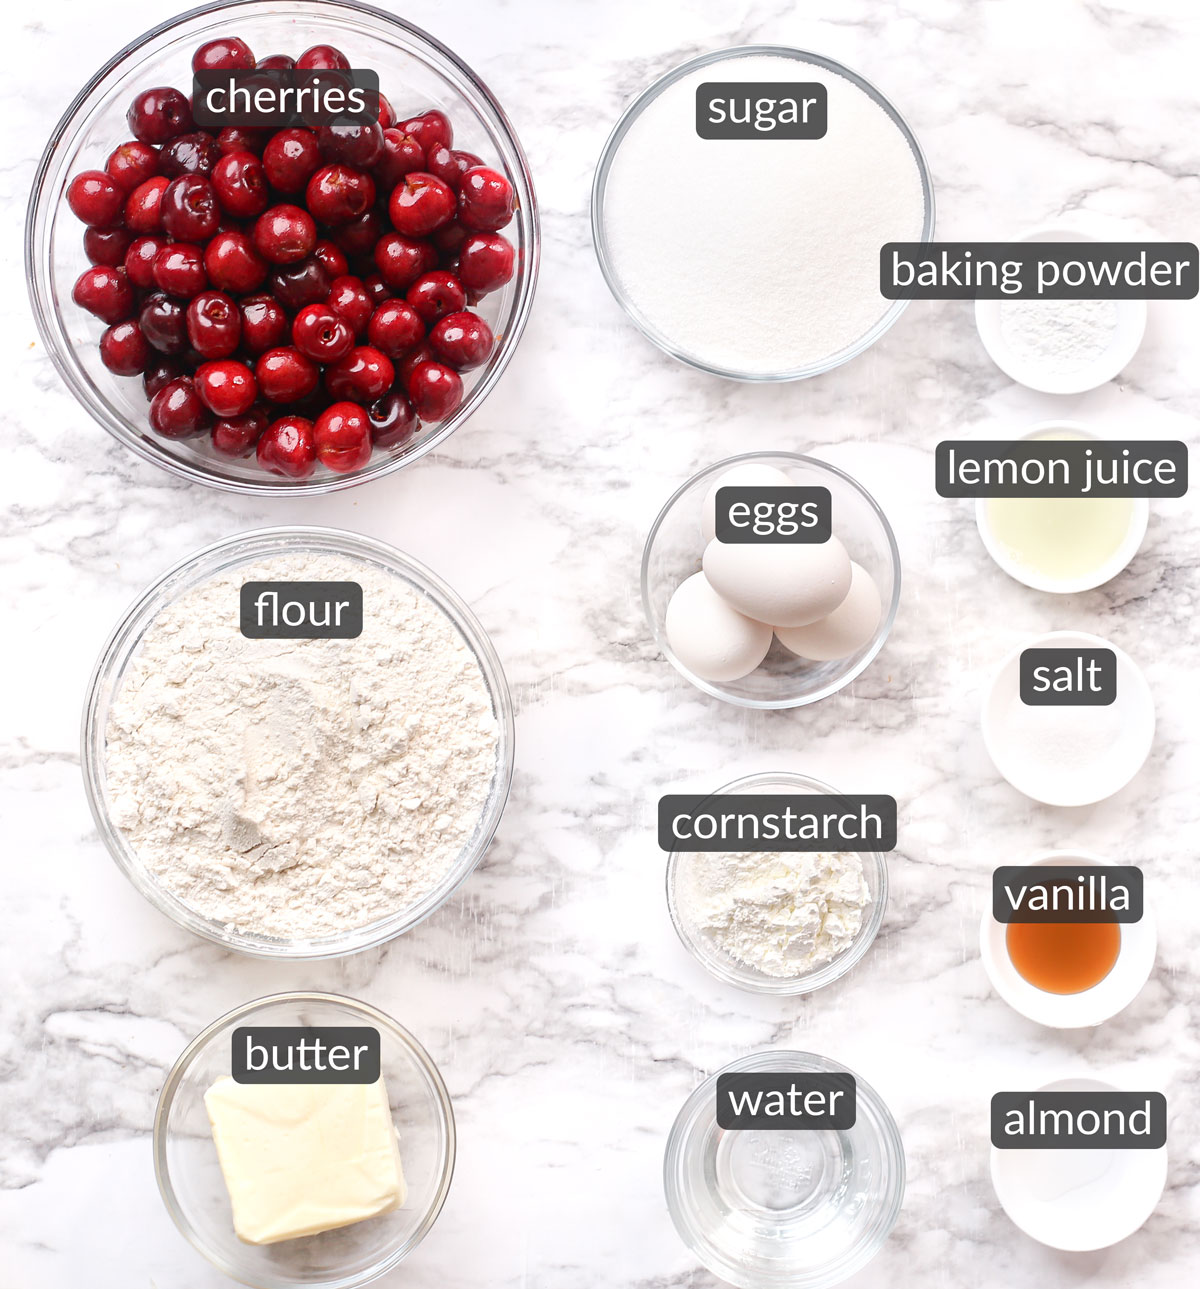 ingredients used to make homemade cherry pie bars